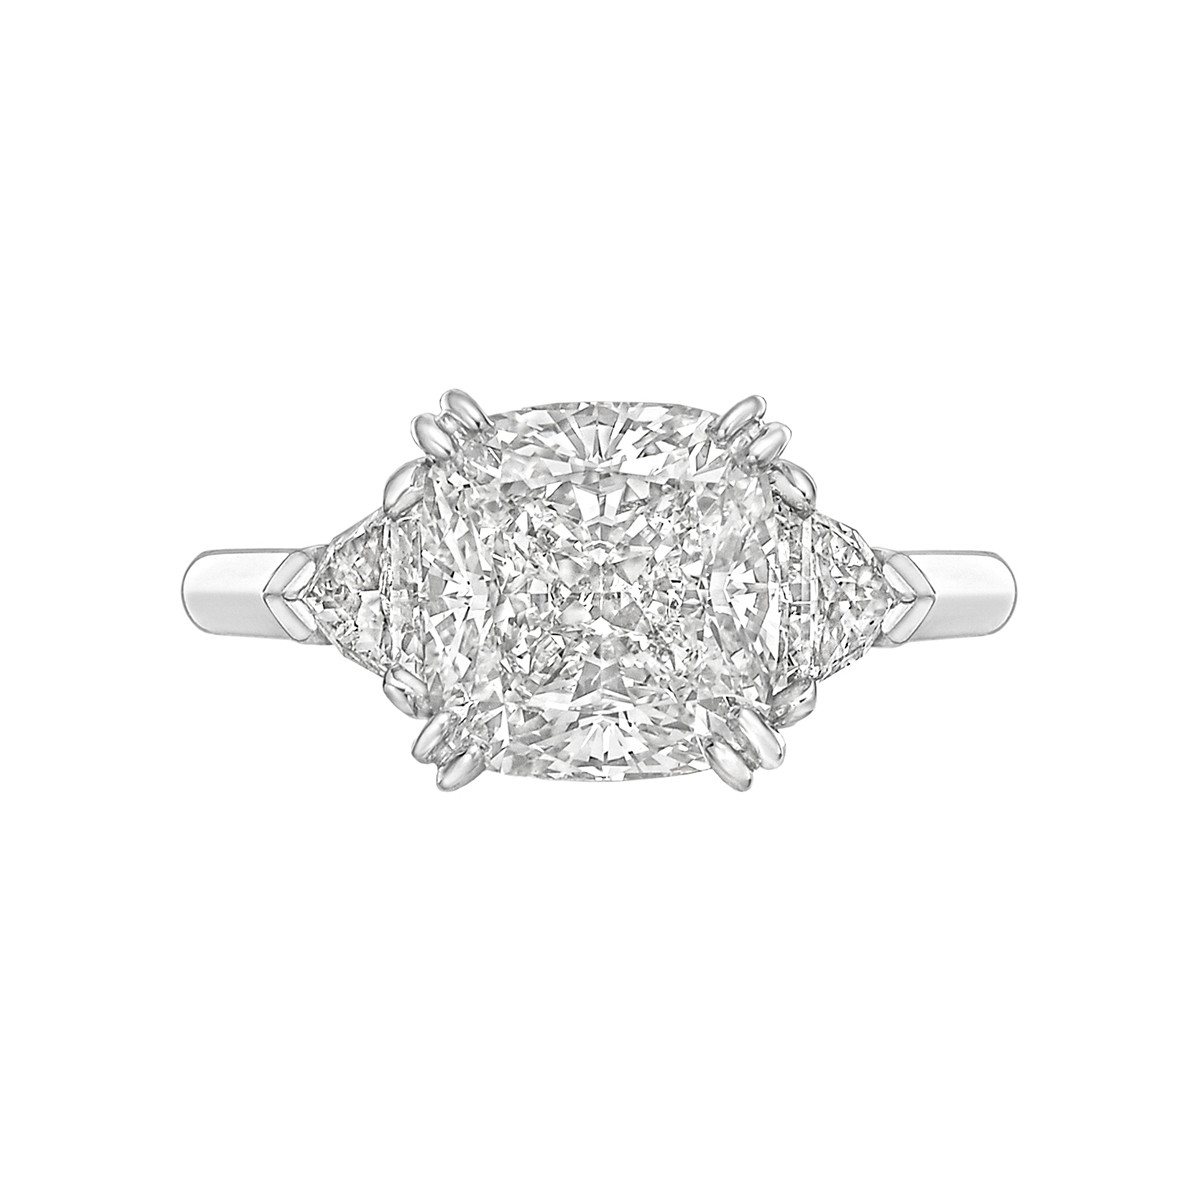 3.51ct Cushion-Cut Diamond Ring